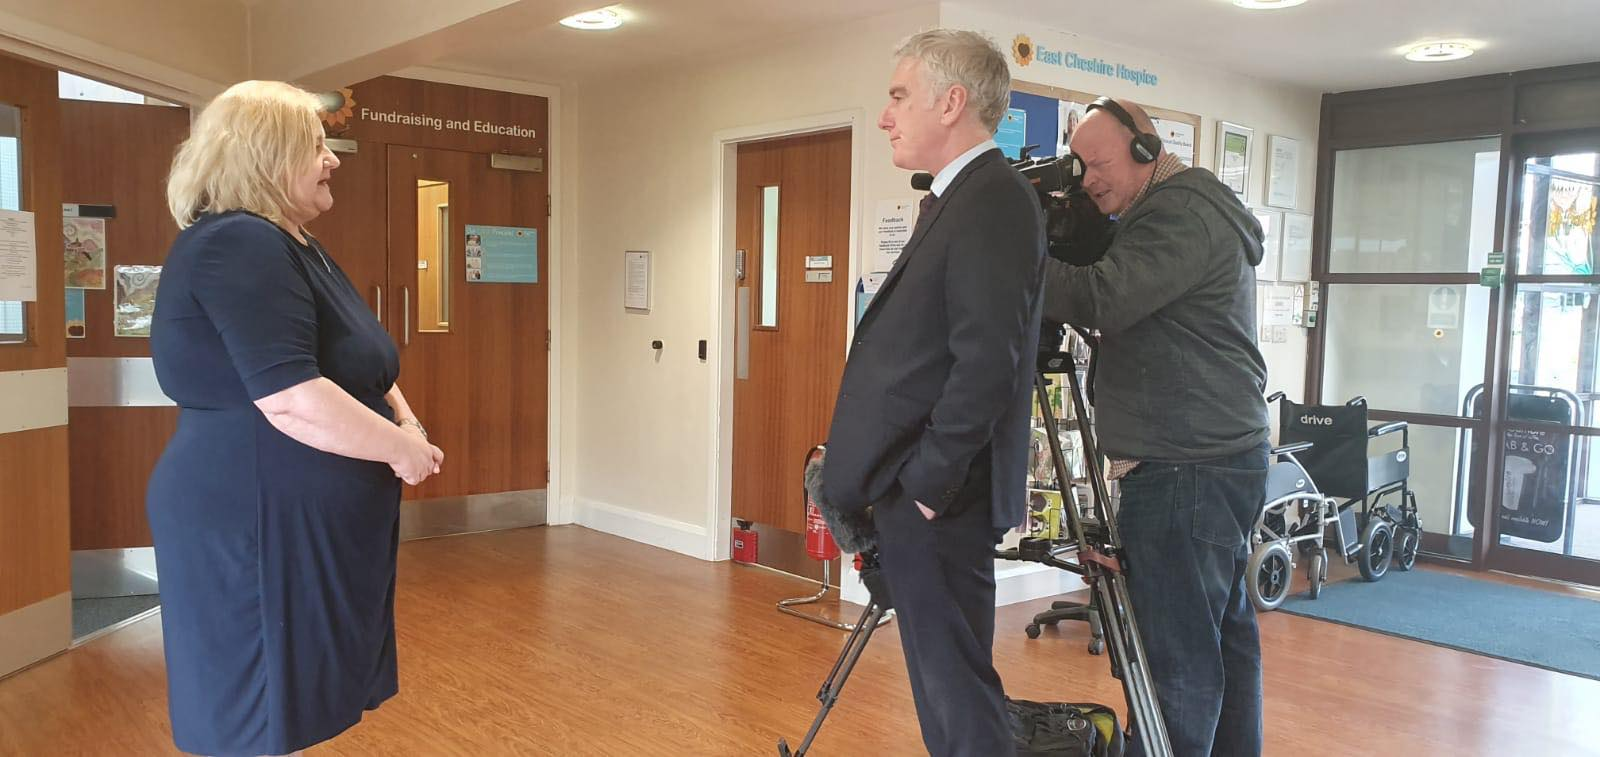 East Cheshire Hospice on BBC North West and ITV Granada